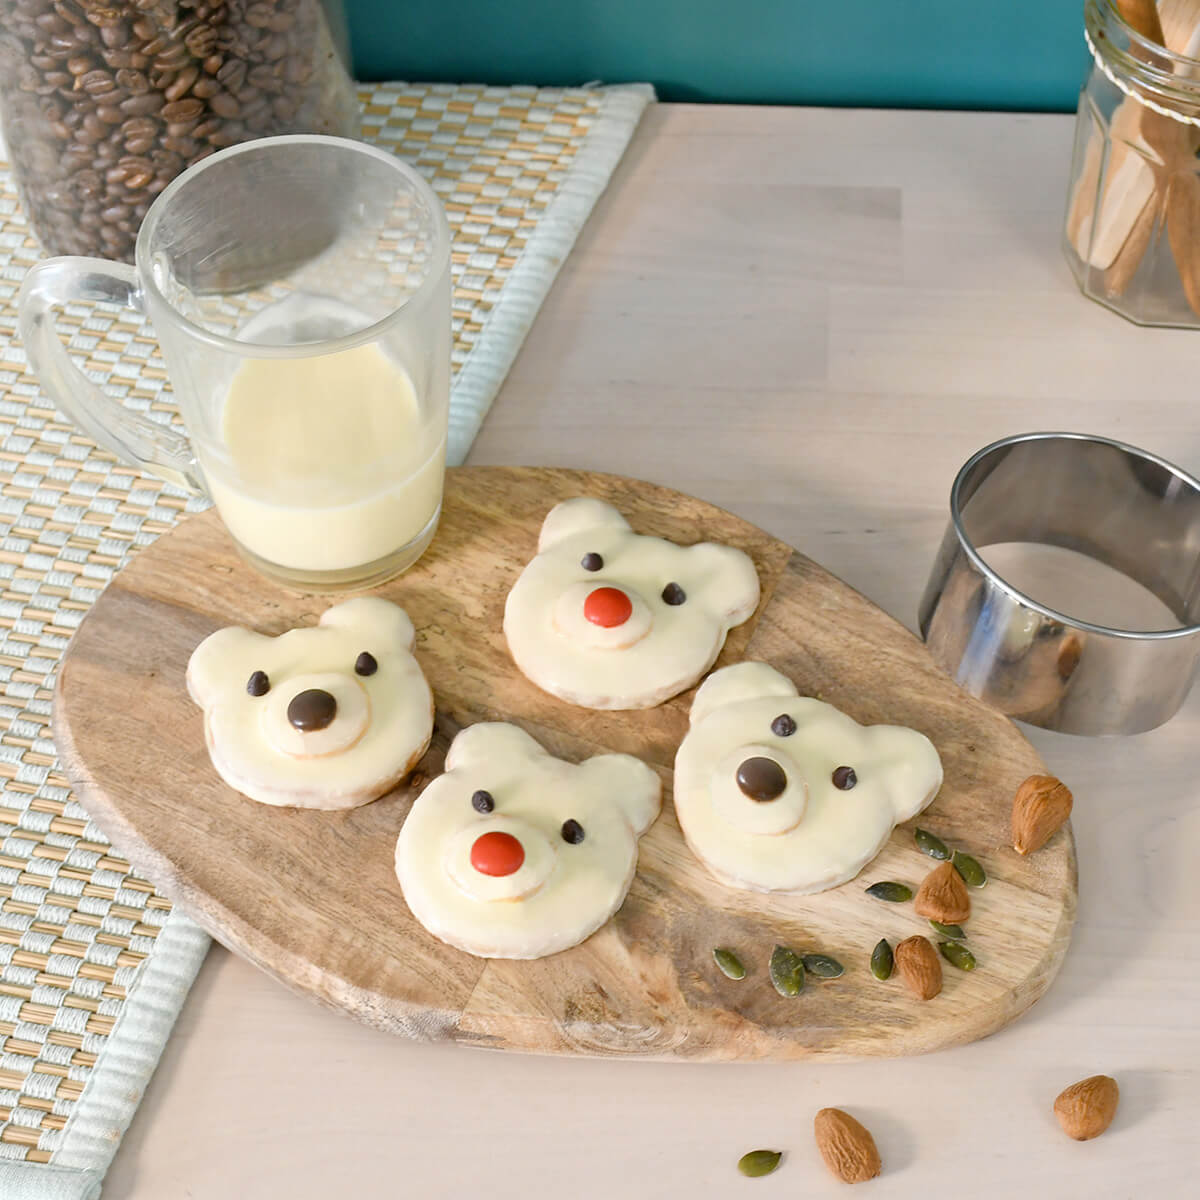 A little delicious and cutie recipe to be prepared for winter coming.